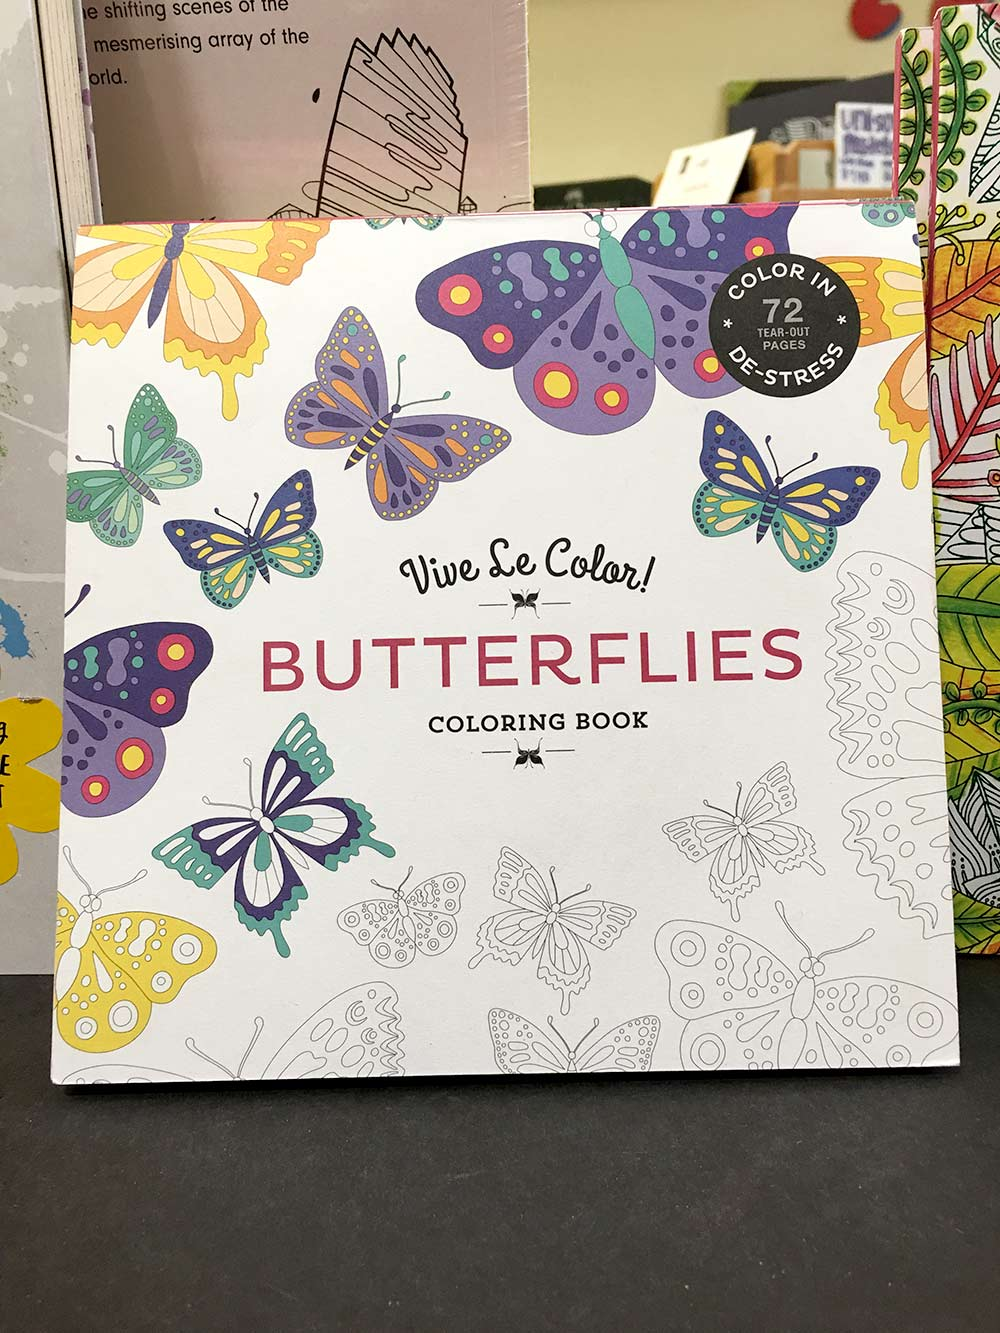 Labeled butterfly coloring pages - Vive Le Colour Butterflies Coloring Book